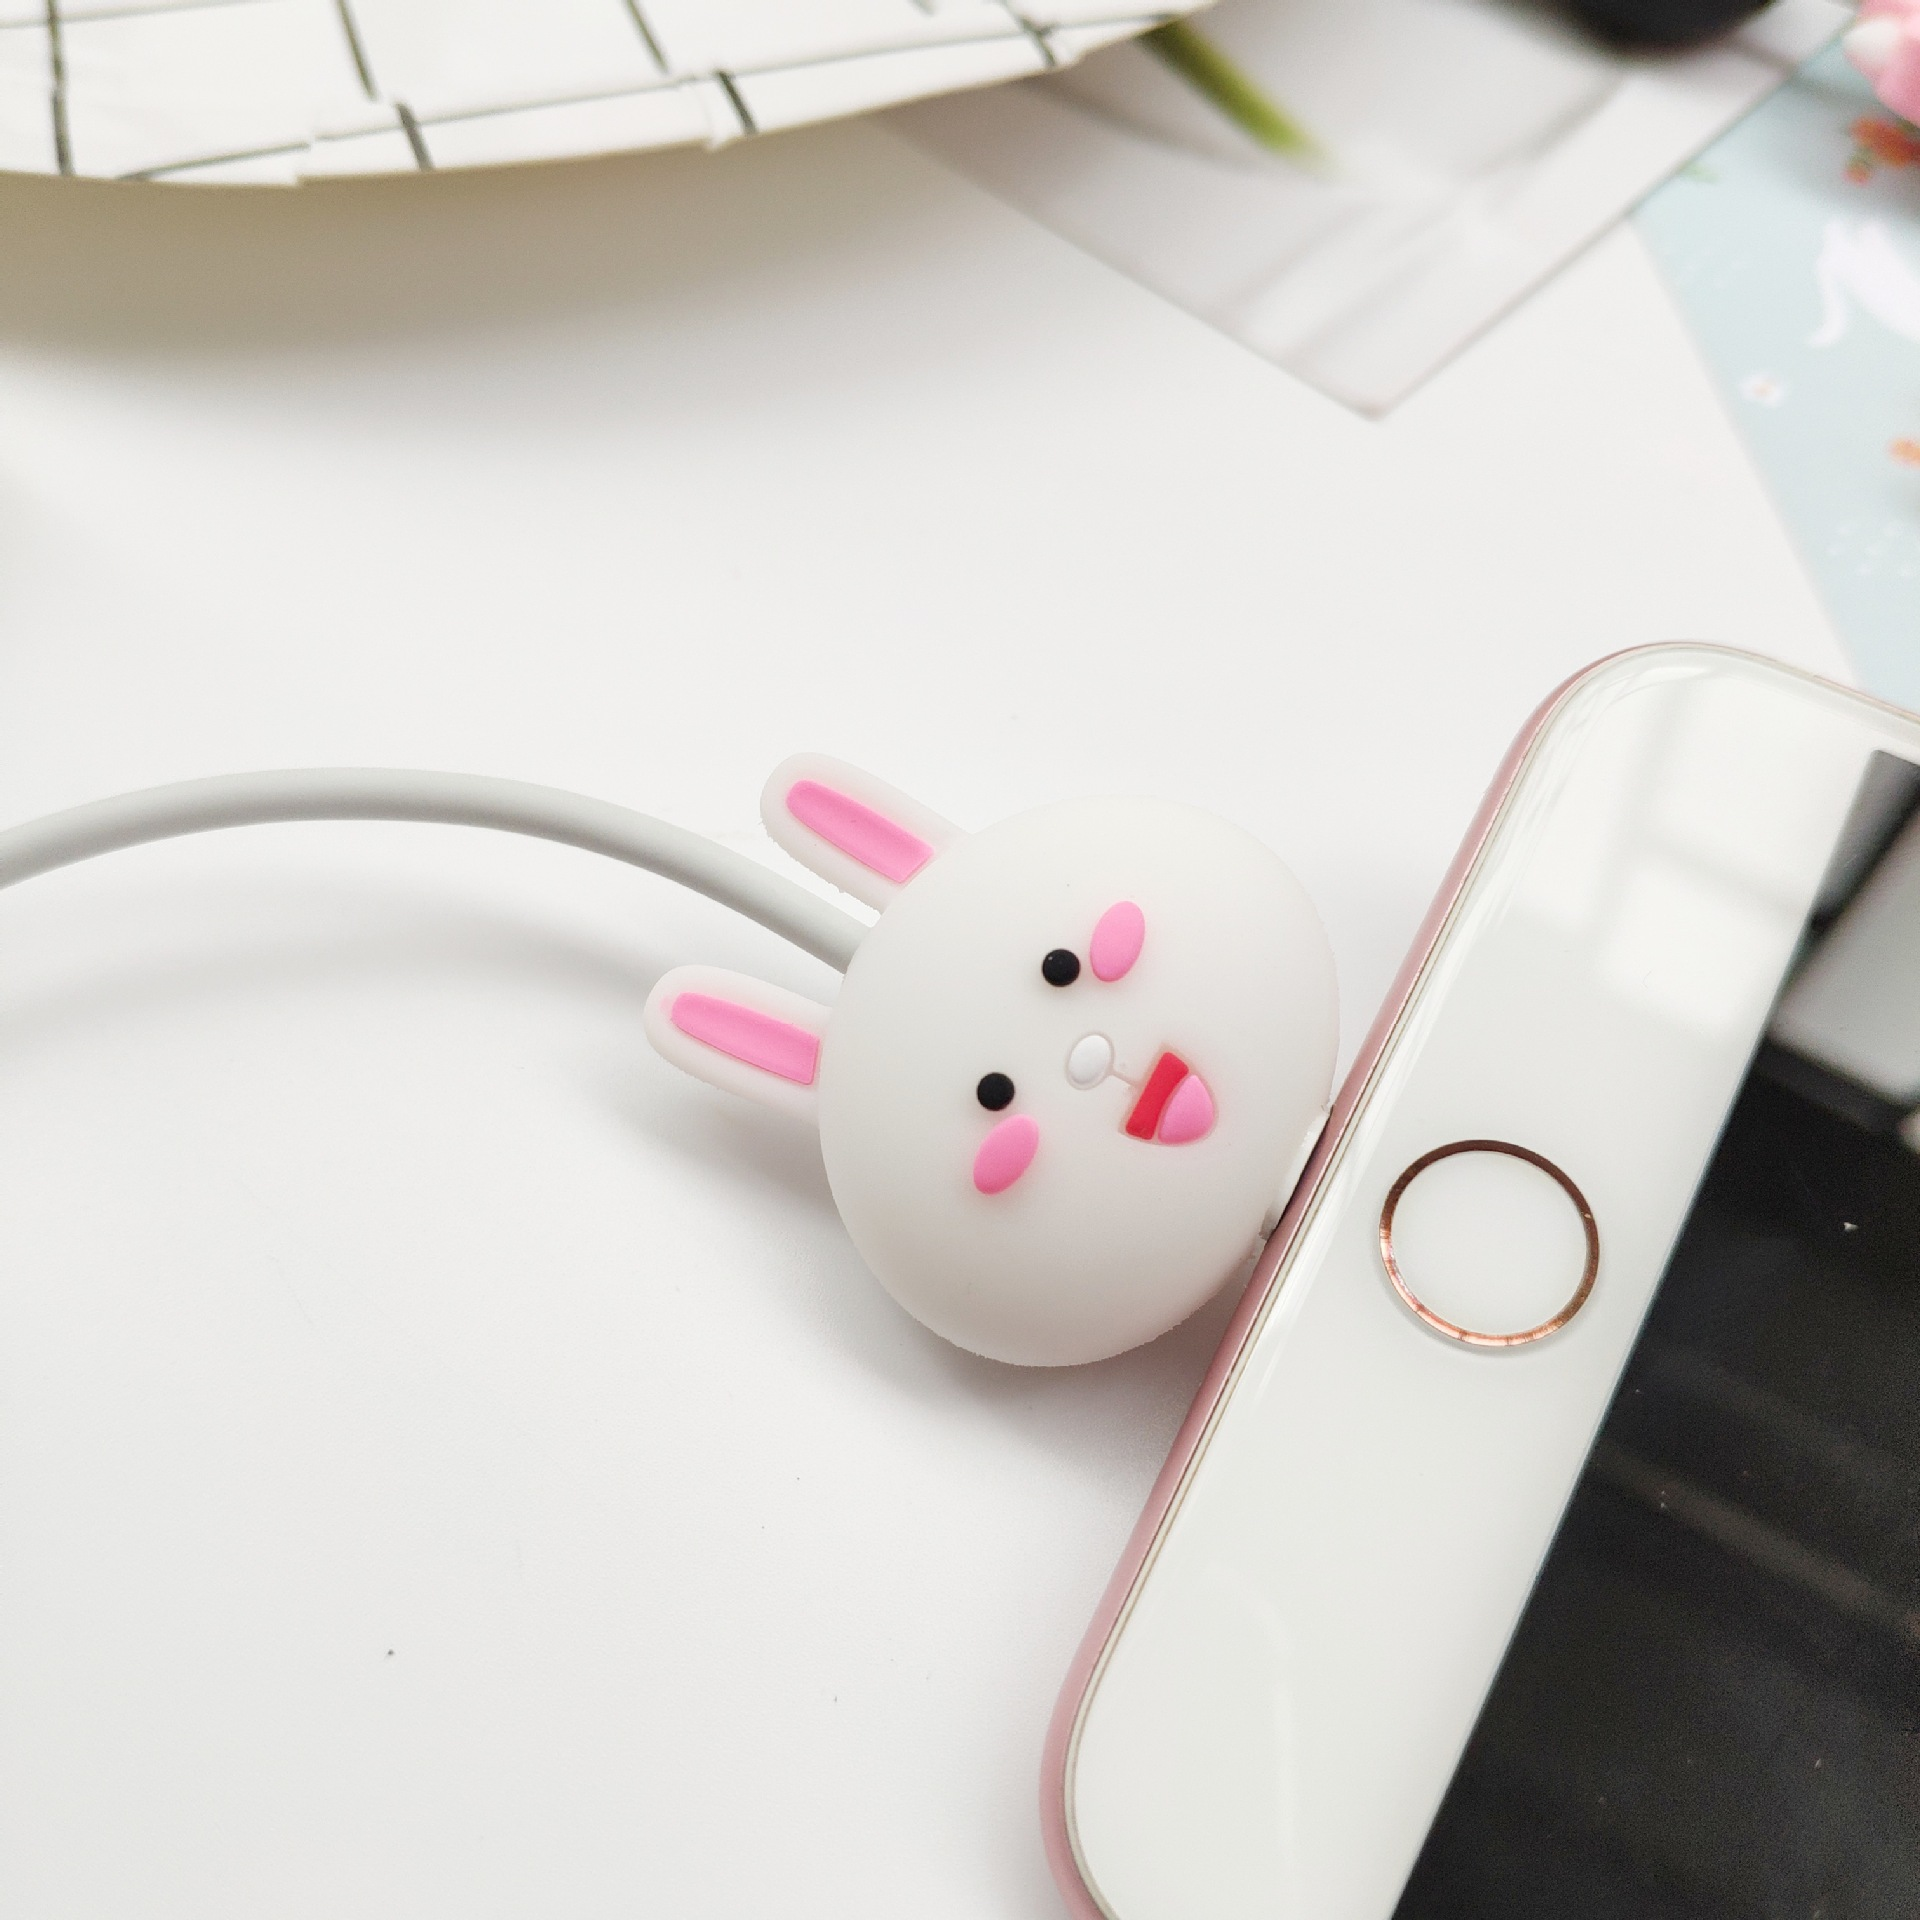 1 Pcs Protector Charger Usb Cable Winder Holder Accessory Organizer Animal Rabbit Model Funny For Meizu For Lenovo Protection Cellphones & Telecommunications